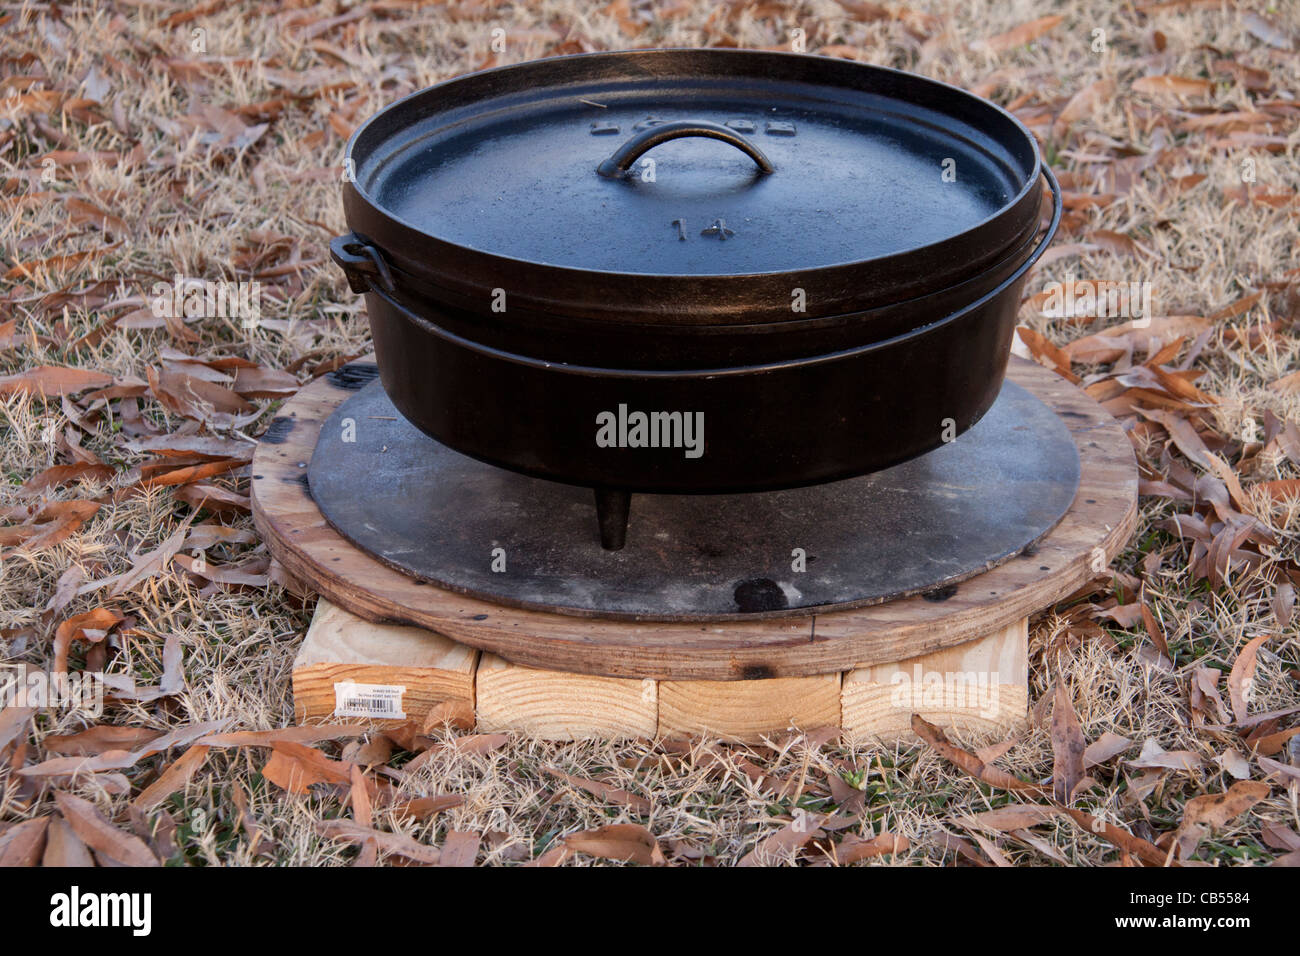 dutch oven outdoor cooking cast iron or black iron pot